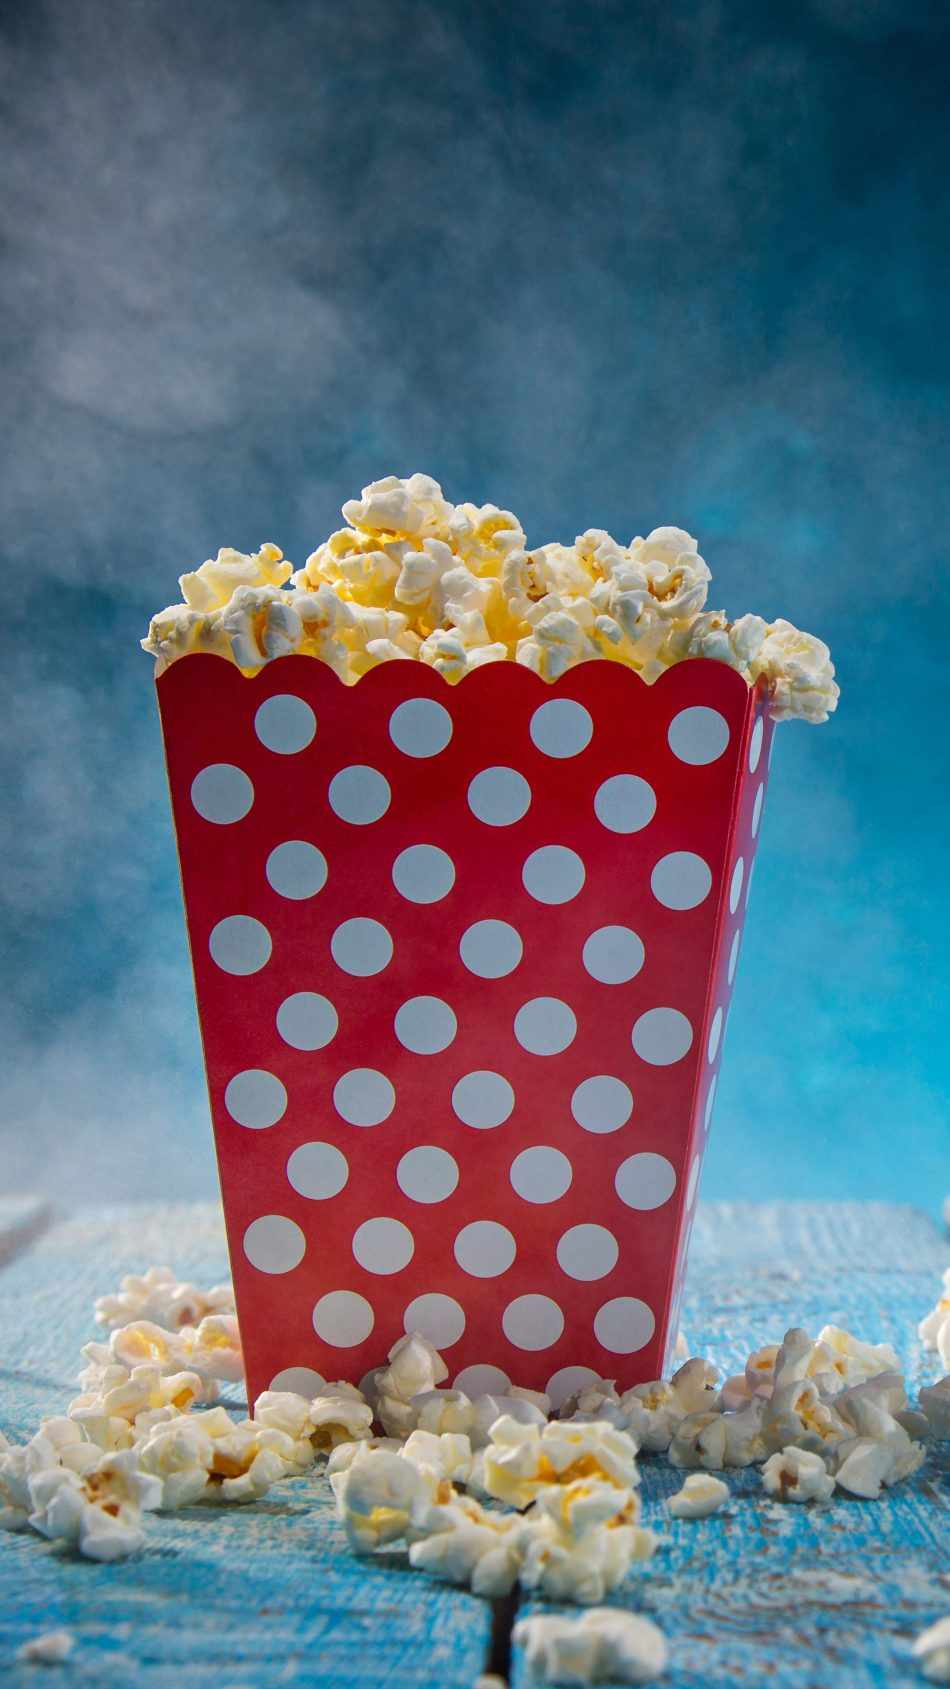 Popcorn 4K Ultra HD Mobile Wallpaper